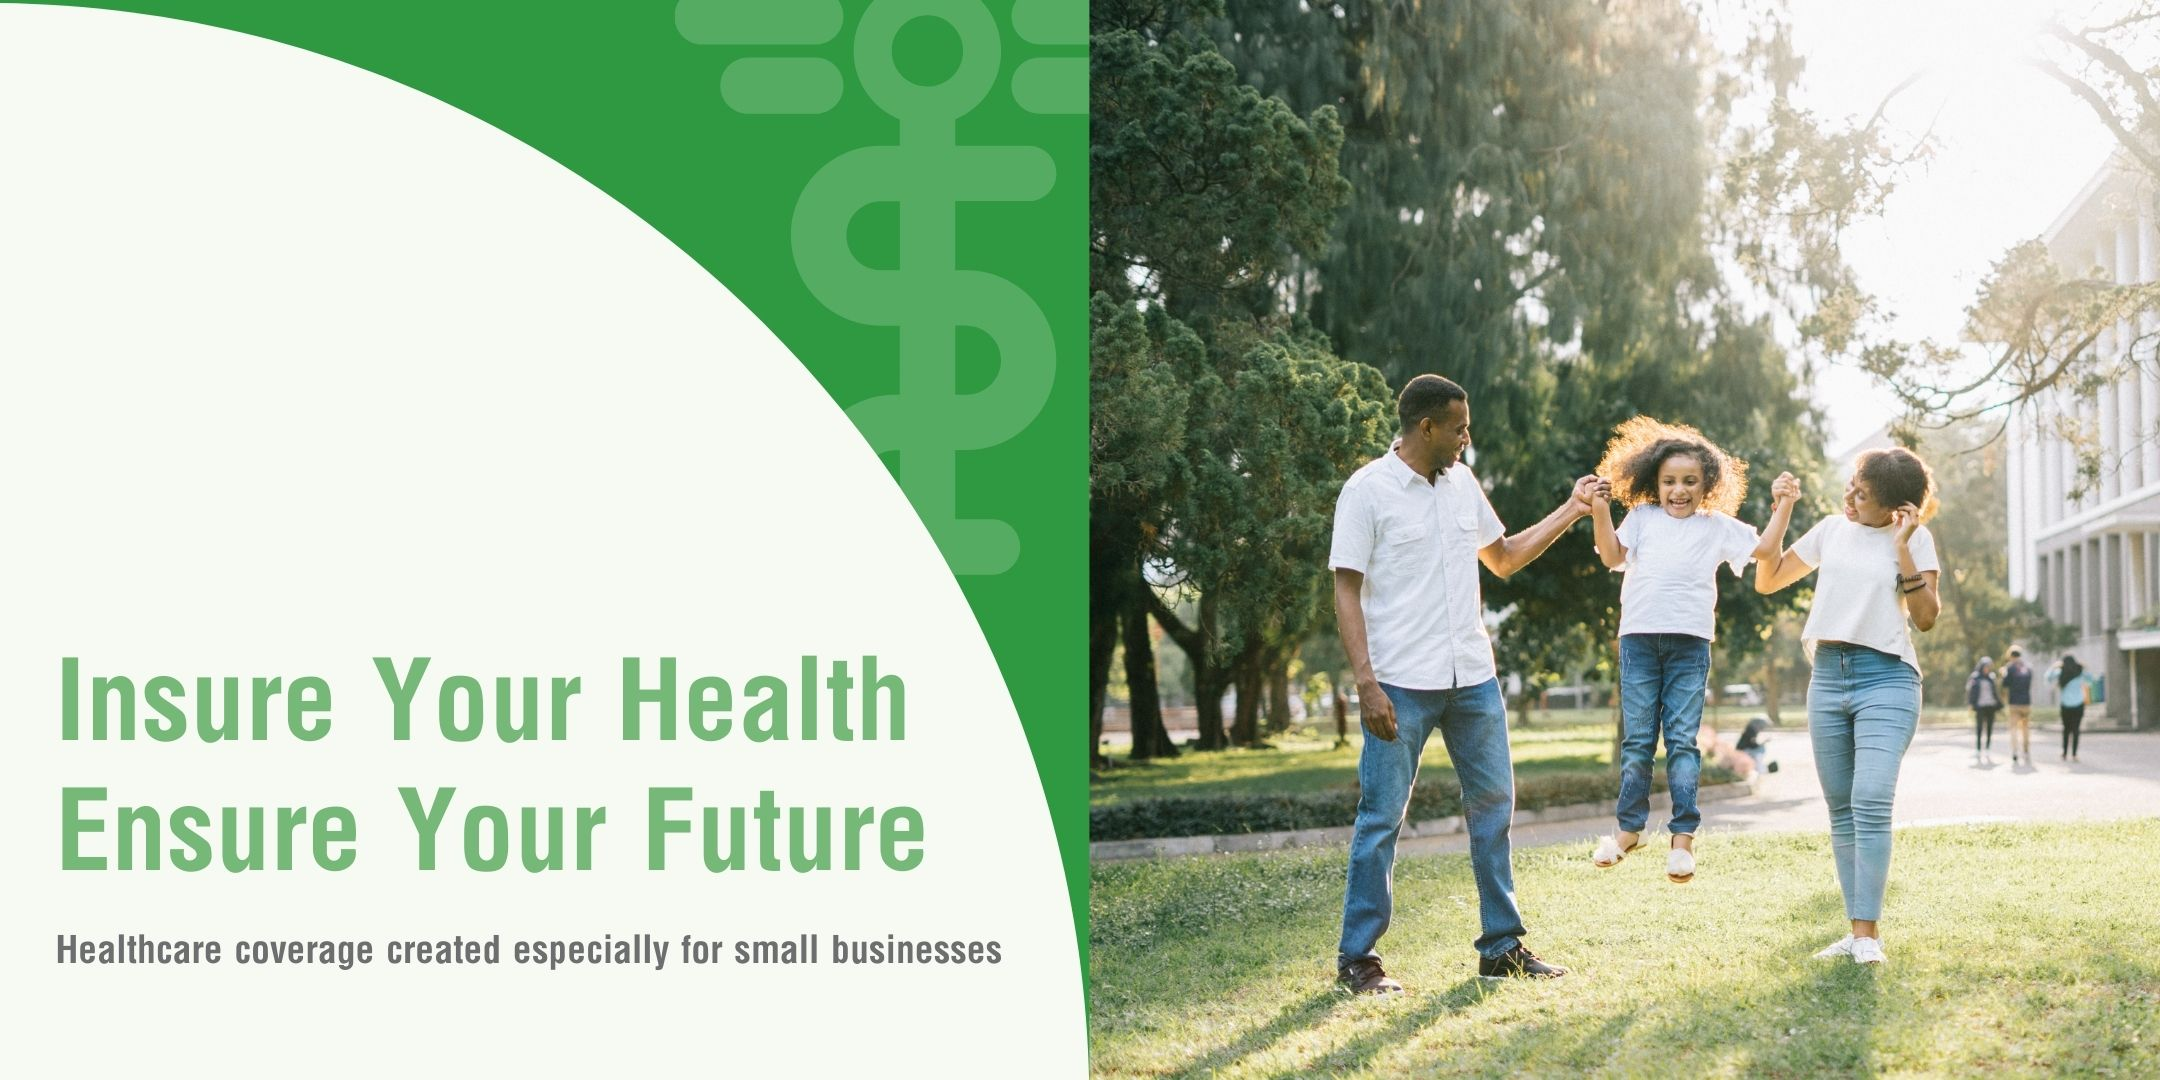 Insure Your Health. Ensure Your Future